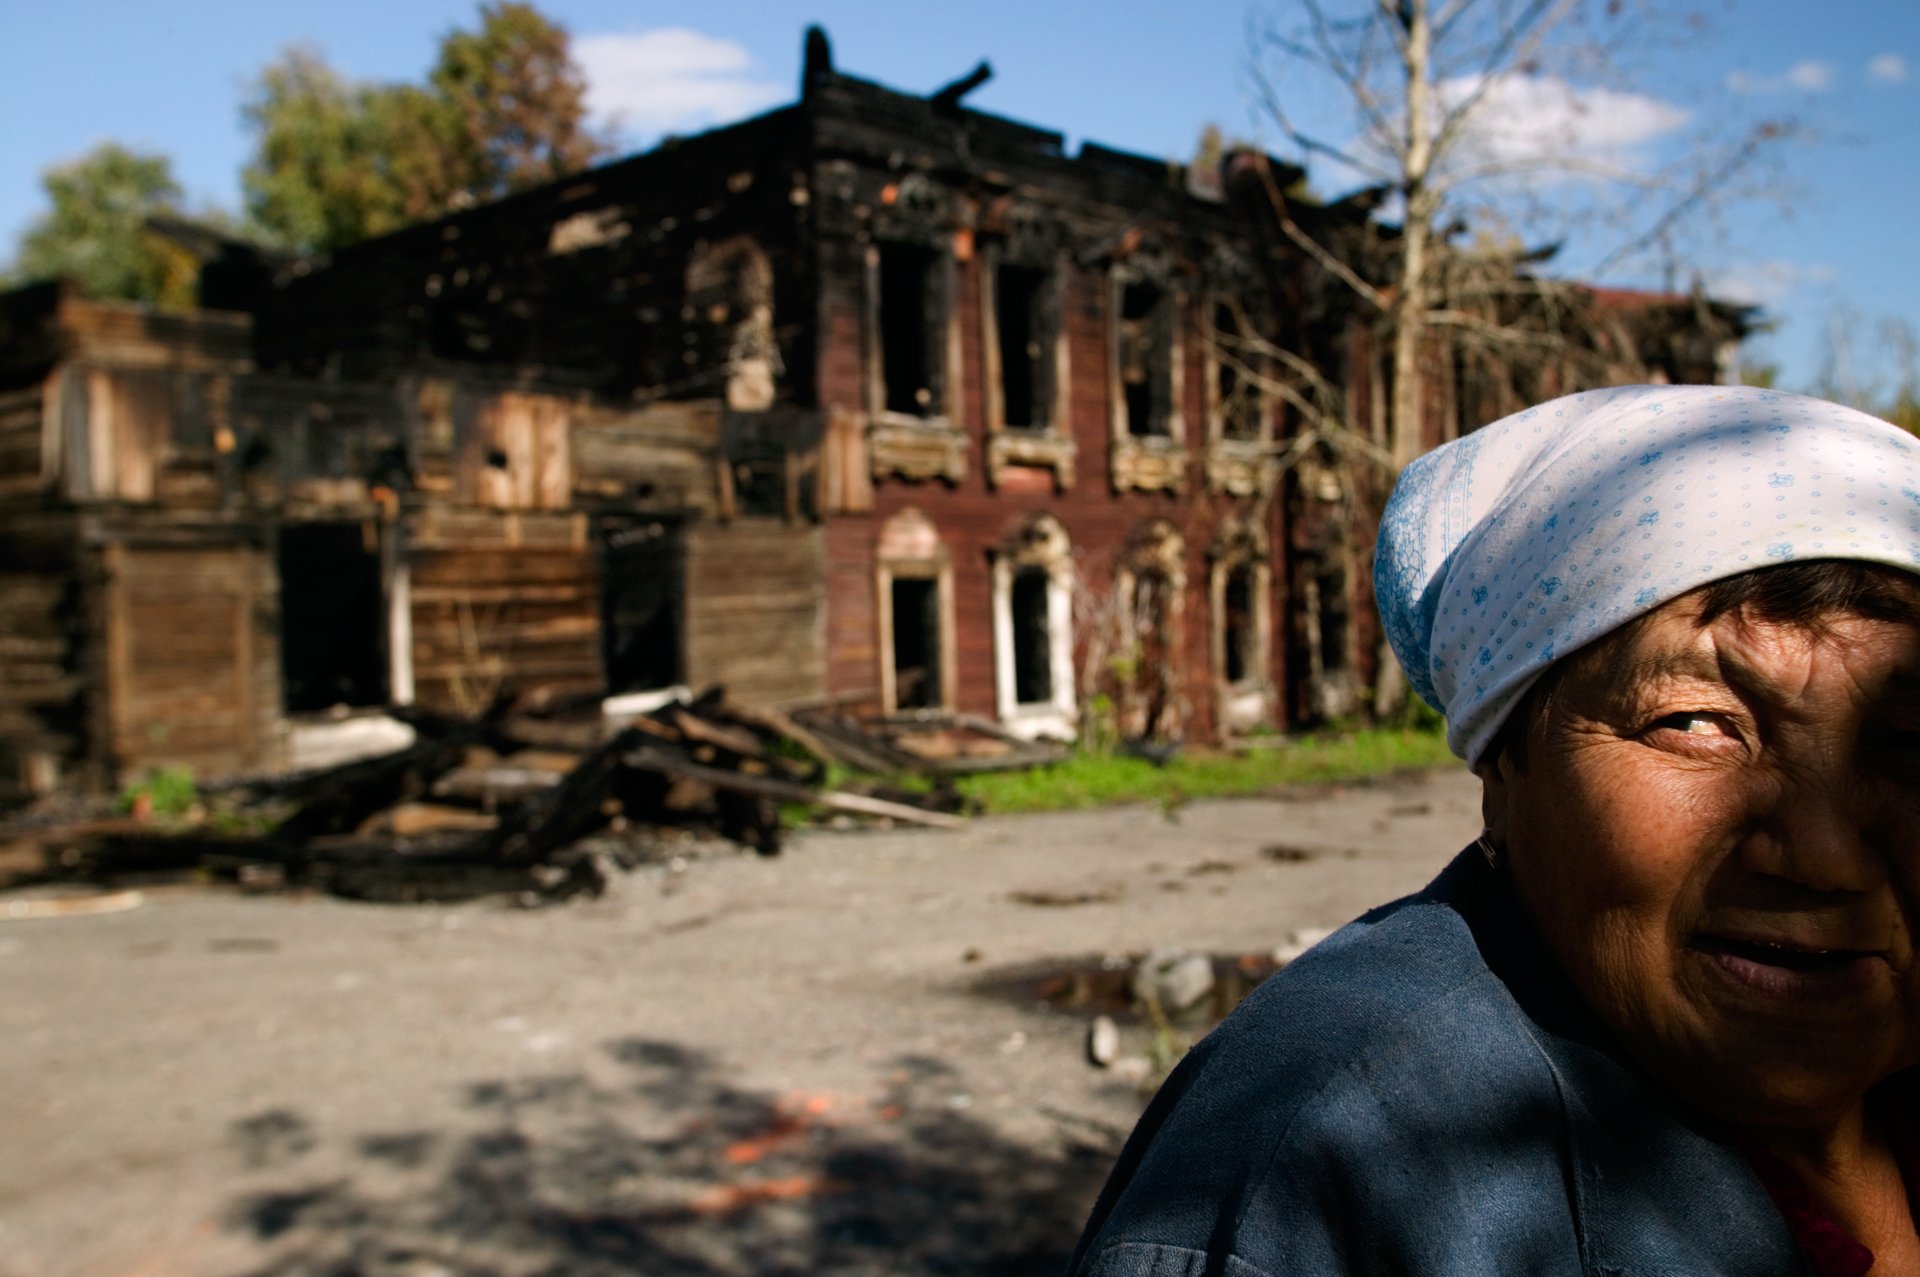 In Tobolsk, one of Bering's primary recruiting stops, villagers forage through the remains of a burned-out building.  Tobolsk, Russia